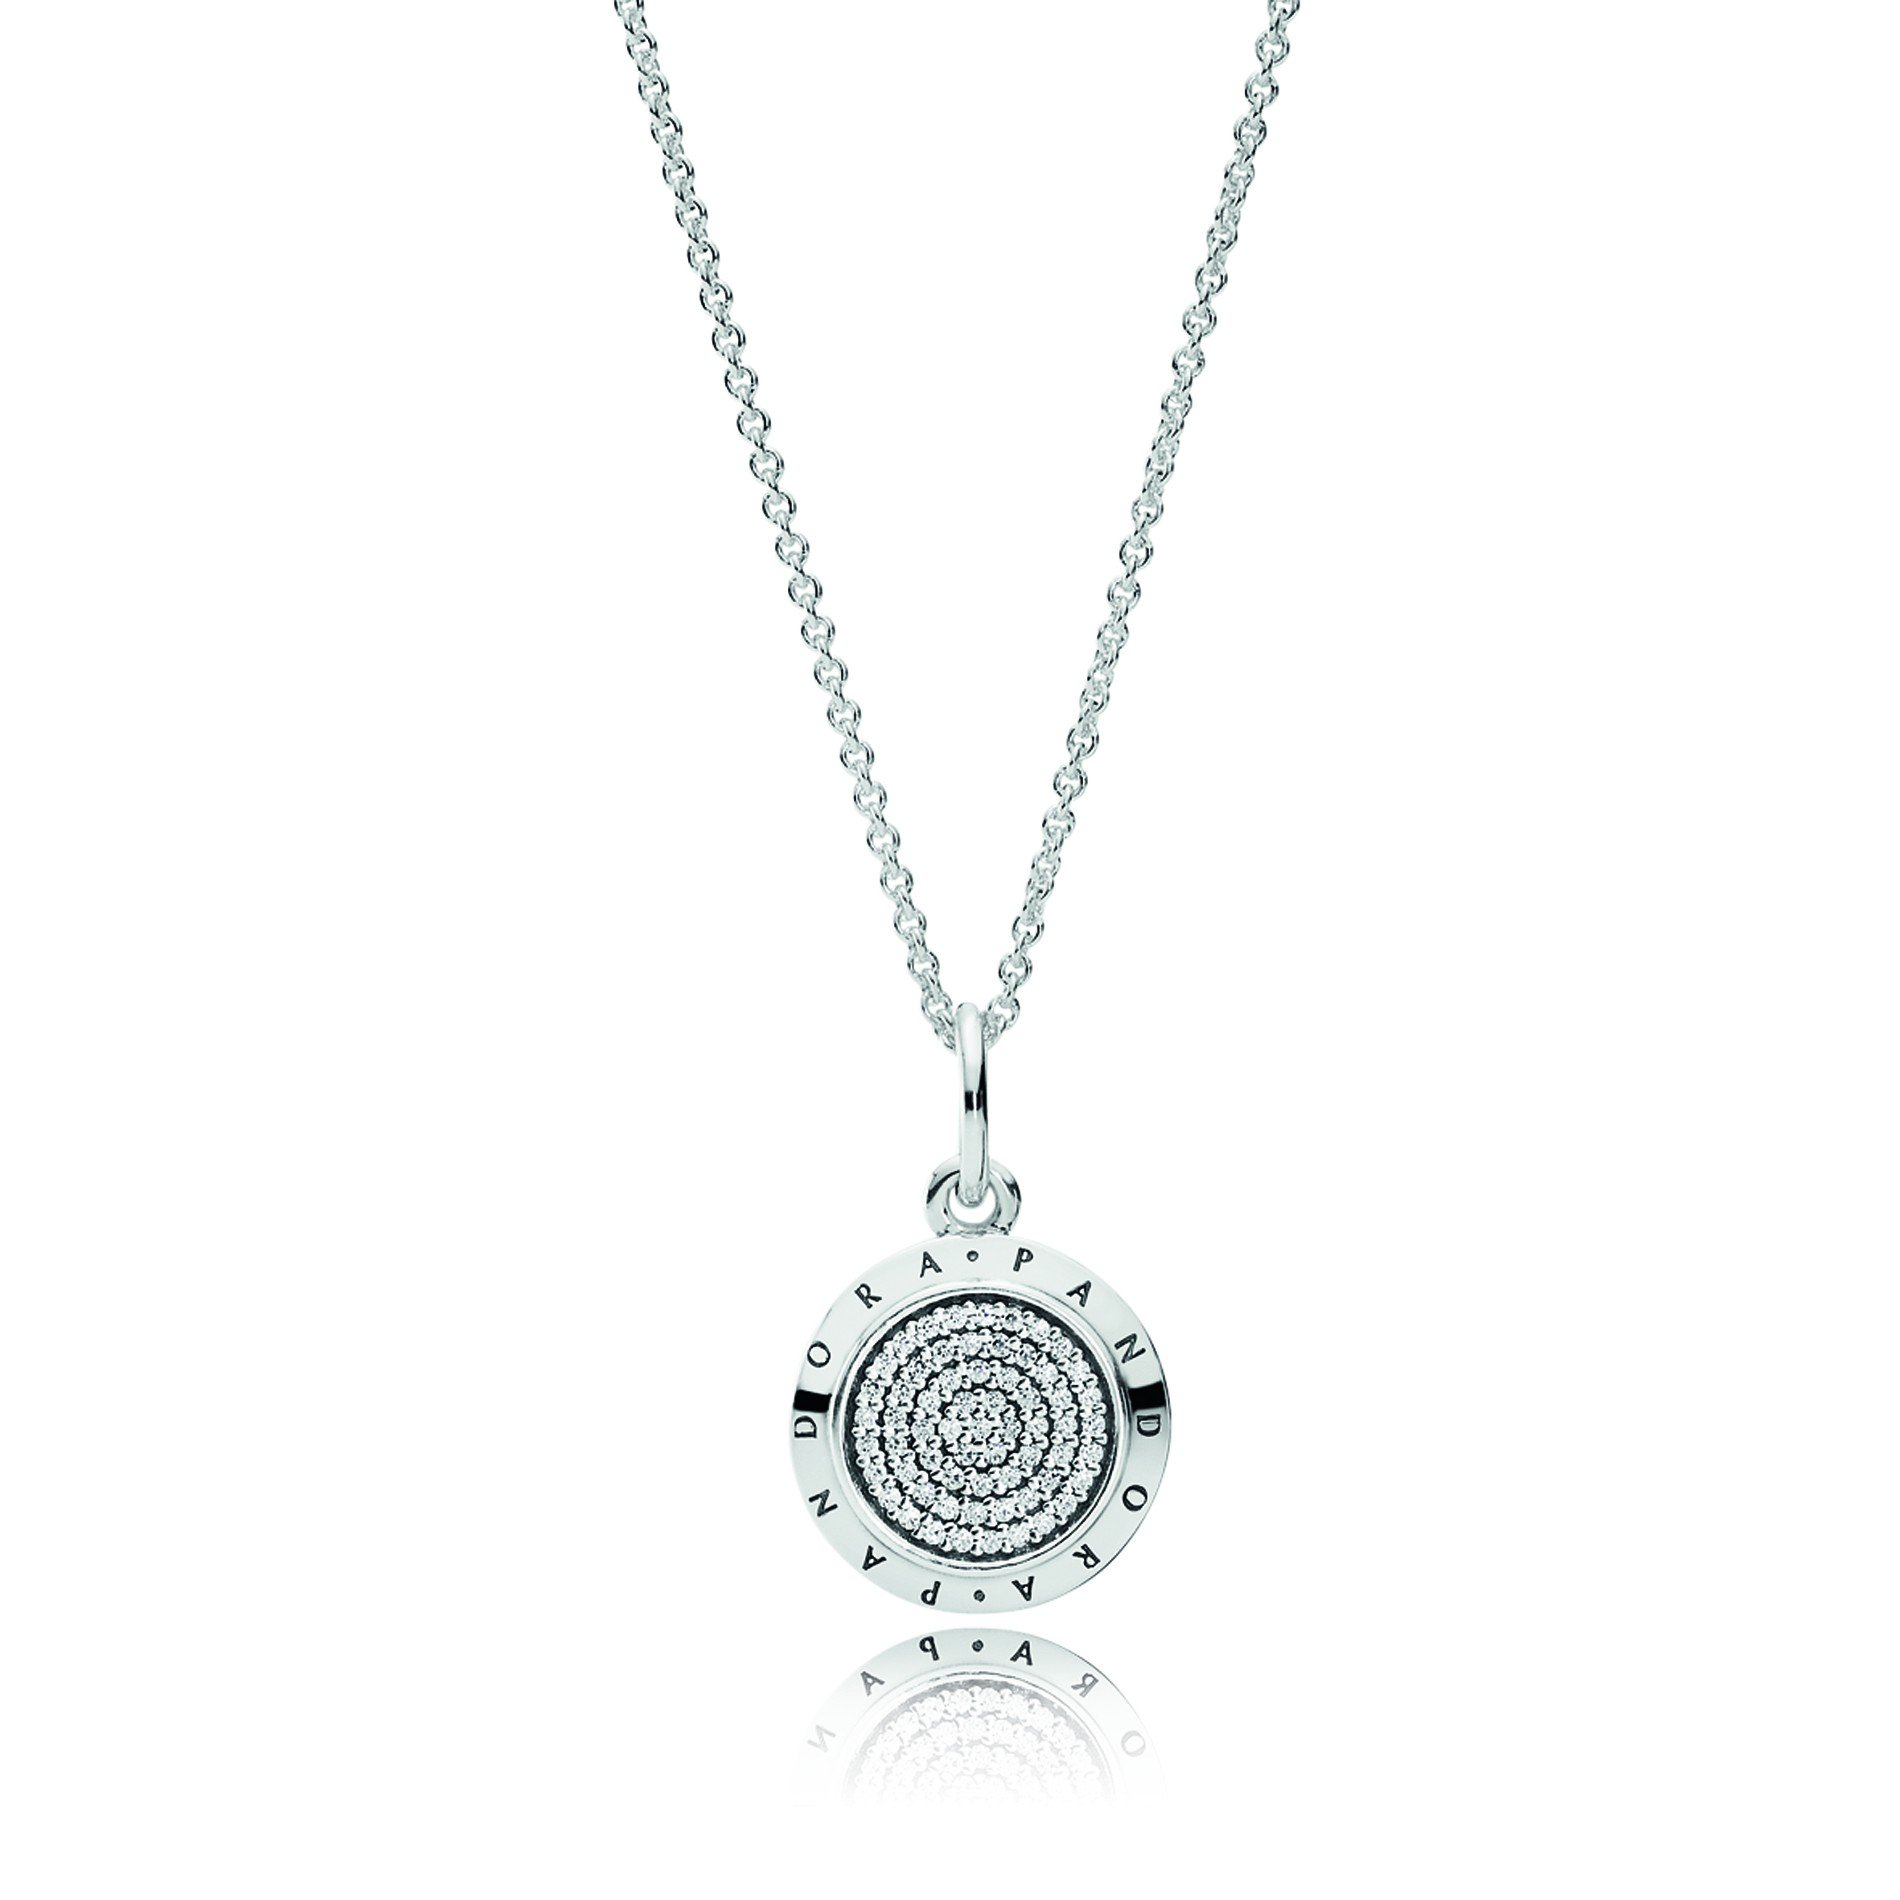 Pandora Signature Necklace, 70cm With Most Up To Date Pandora Lockets Logo Necklaces (View 17 of 25)